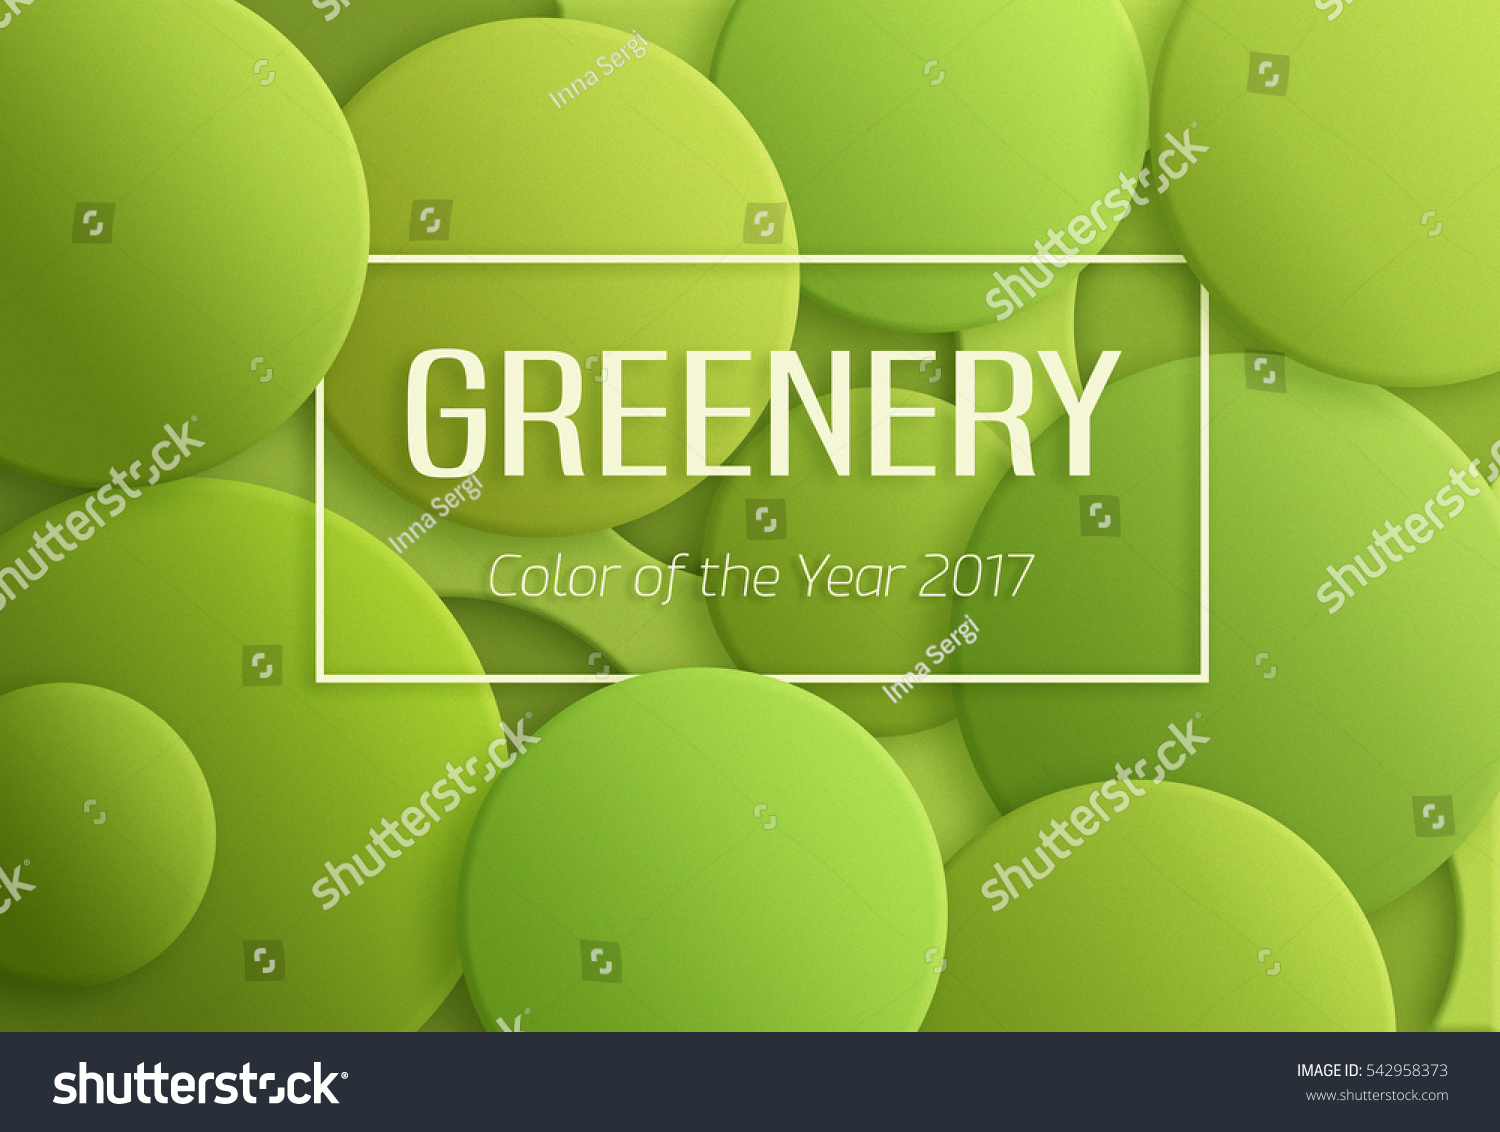 Greenery Pantone Color Year 2017 Greenery Pantone Abstract Stock Illustration